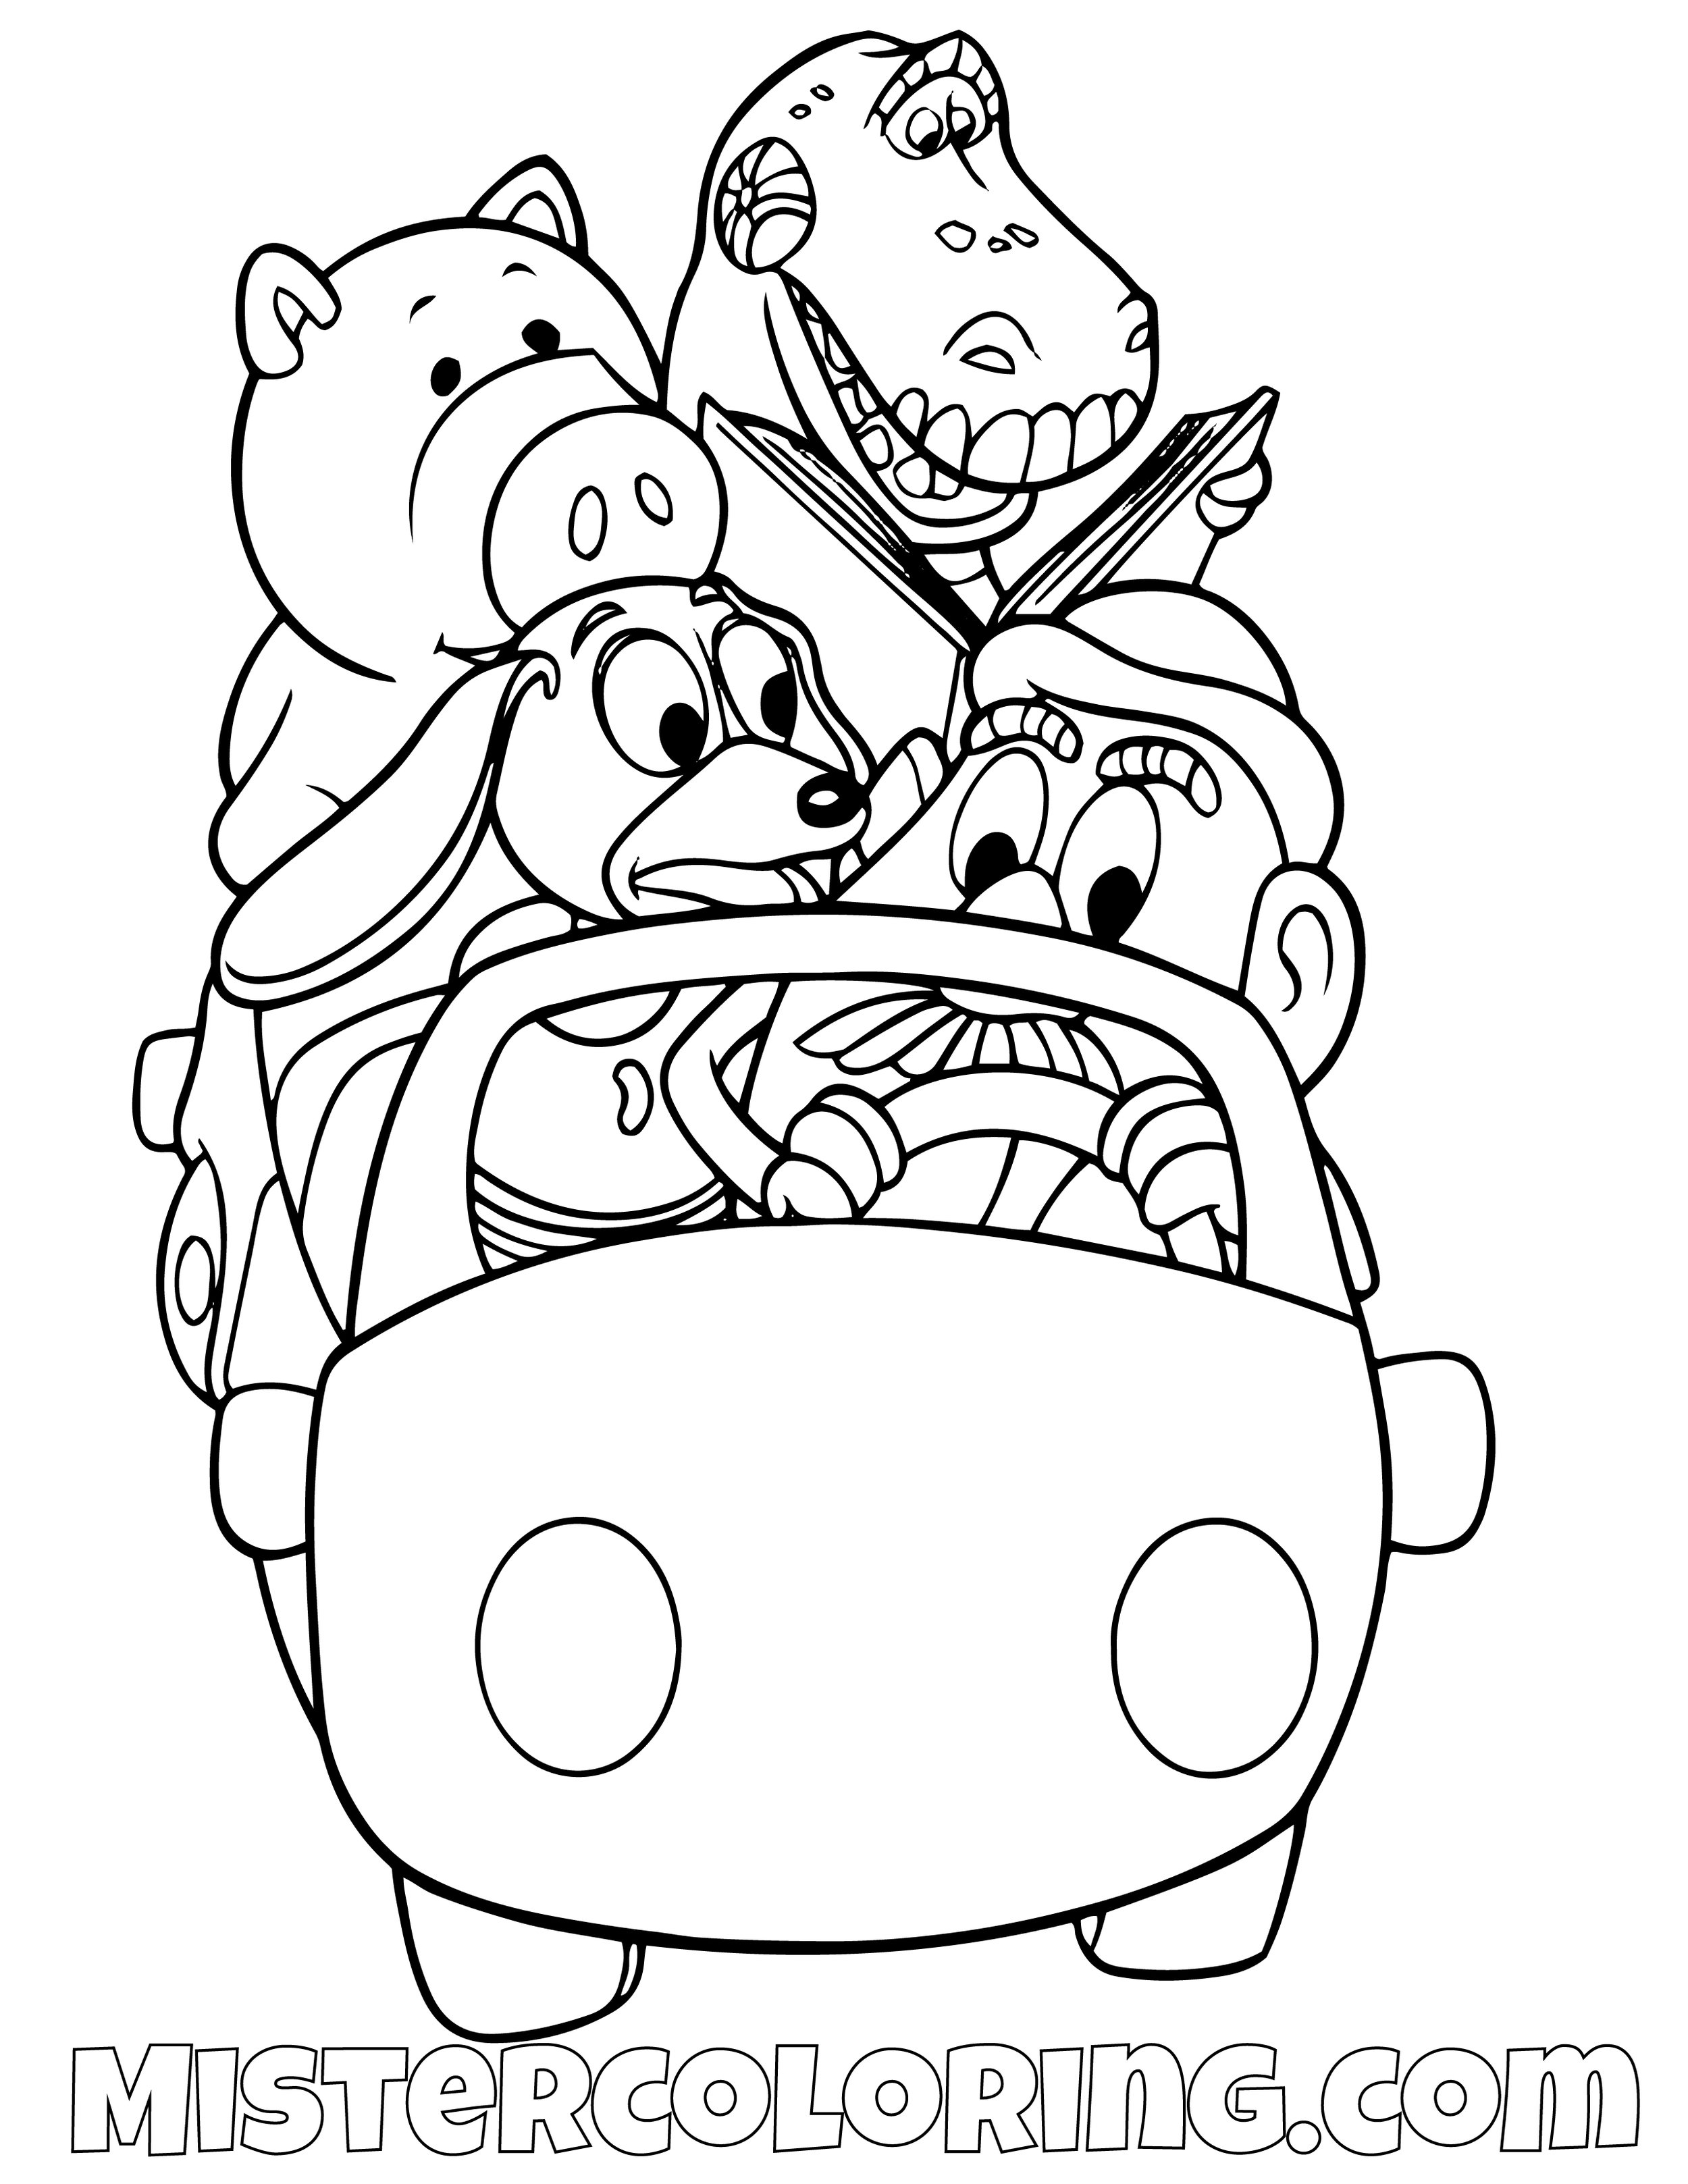 Ham Rex Slinky Dog And Mr Potato Head Driving A Car Toy Story Coloring Page